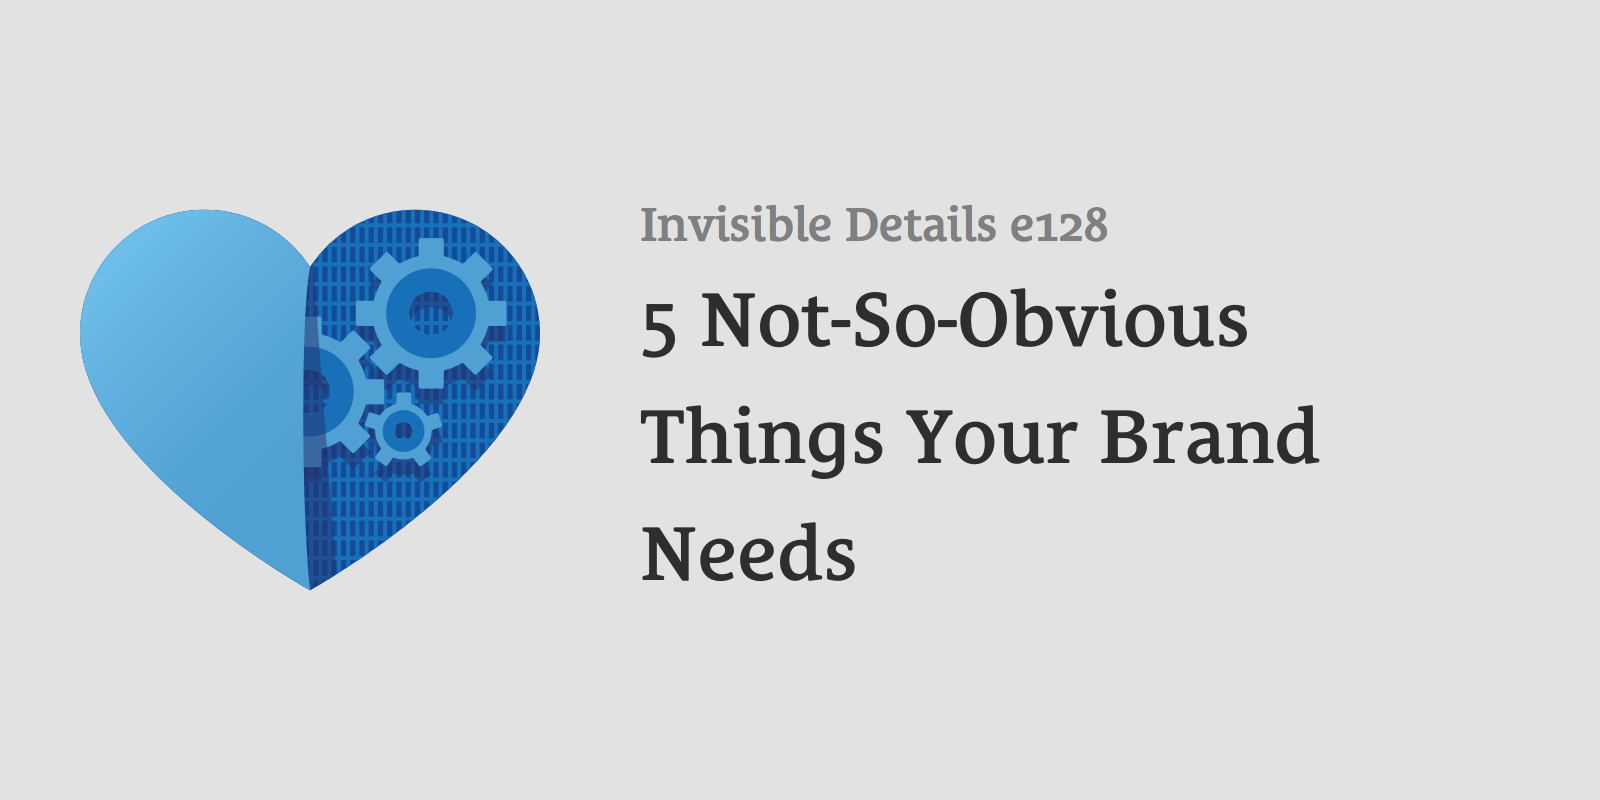 5 Not-So-Obvious Things Your Brand Needs